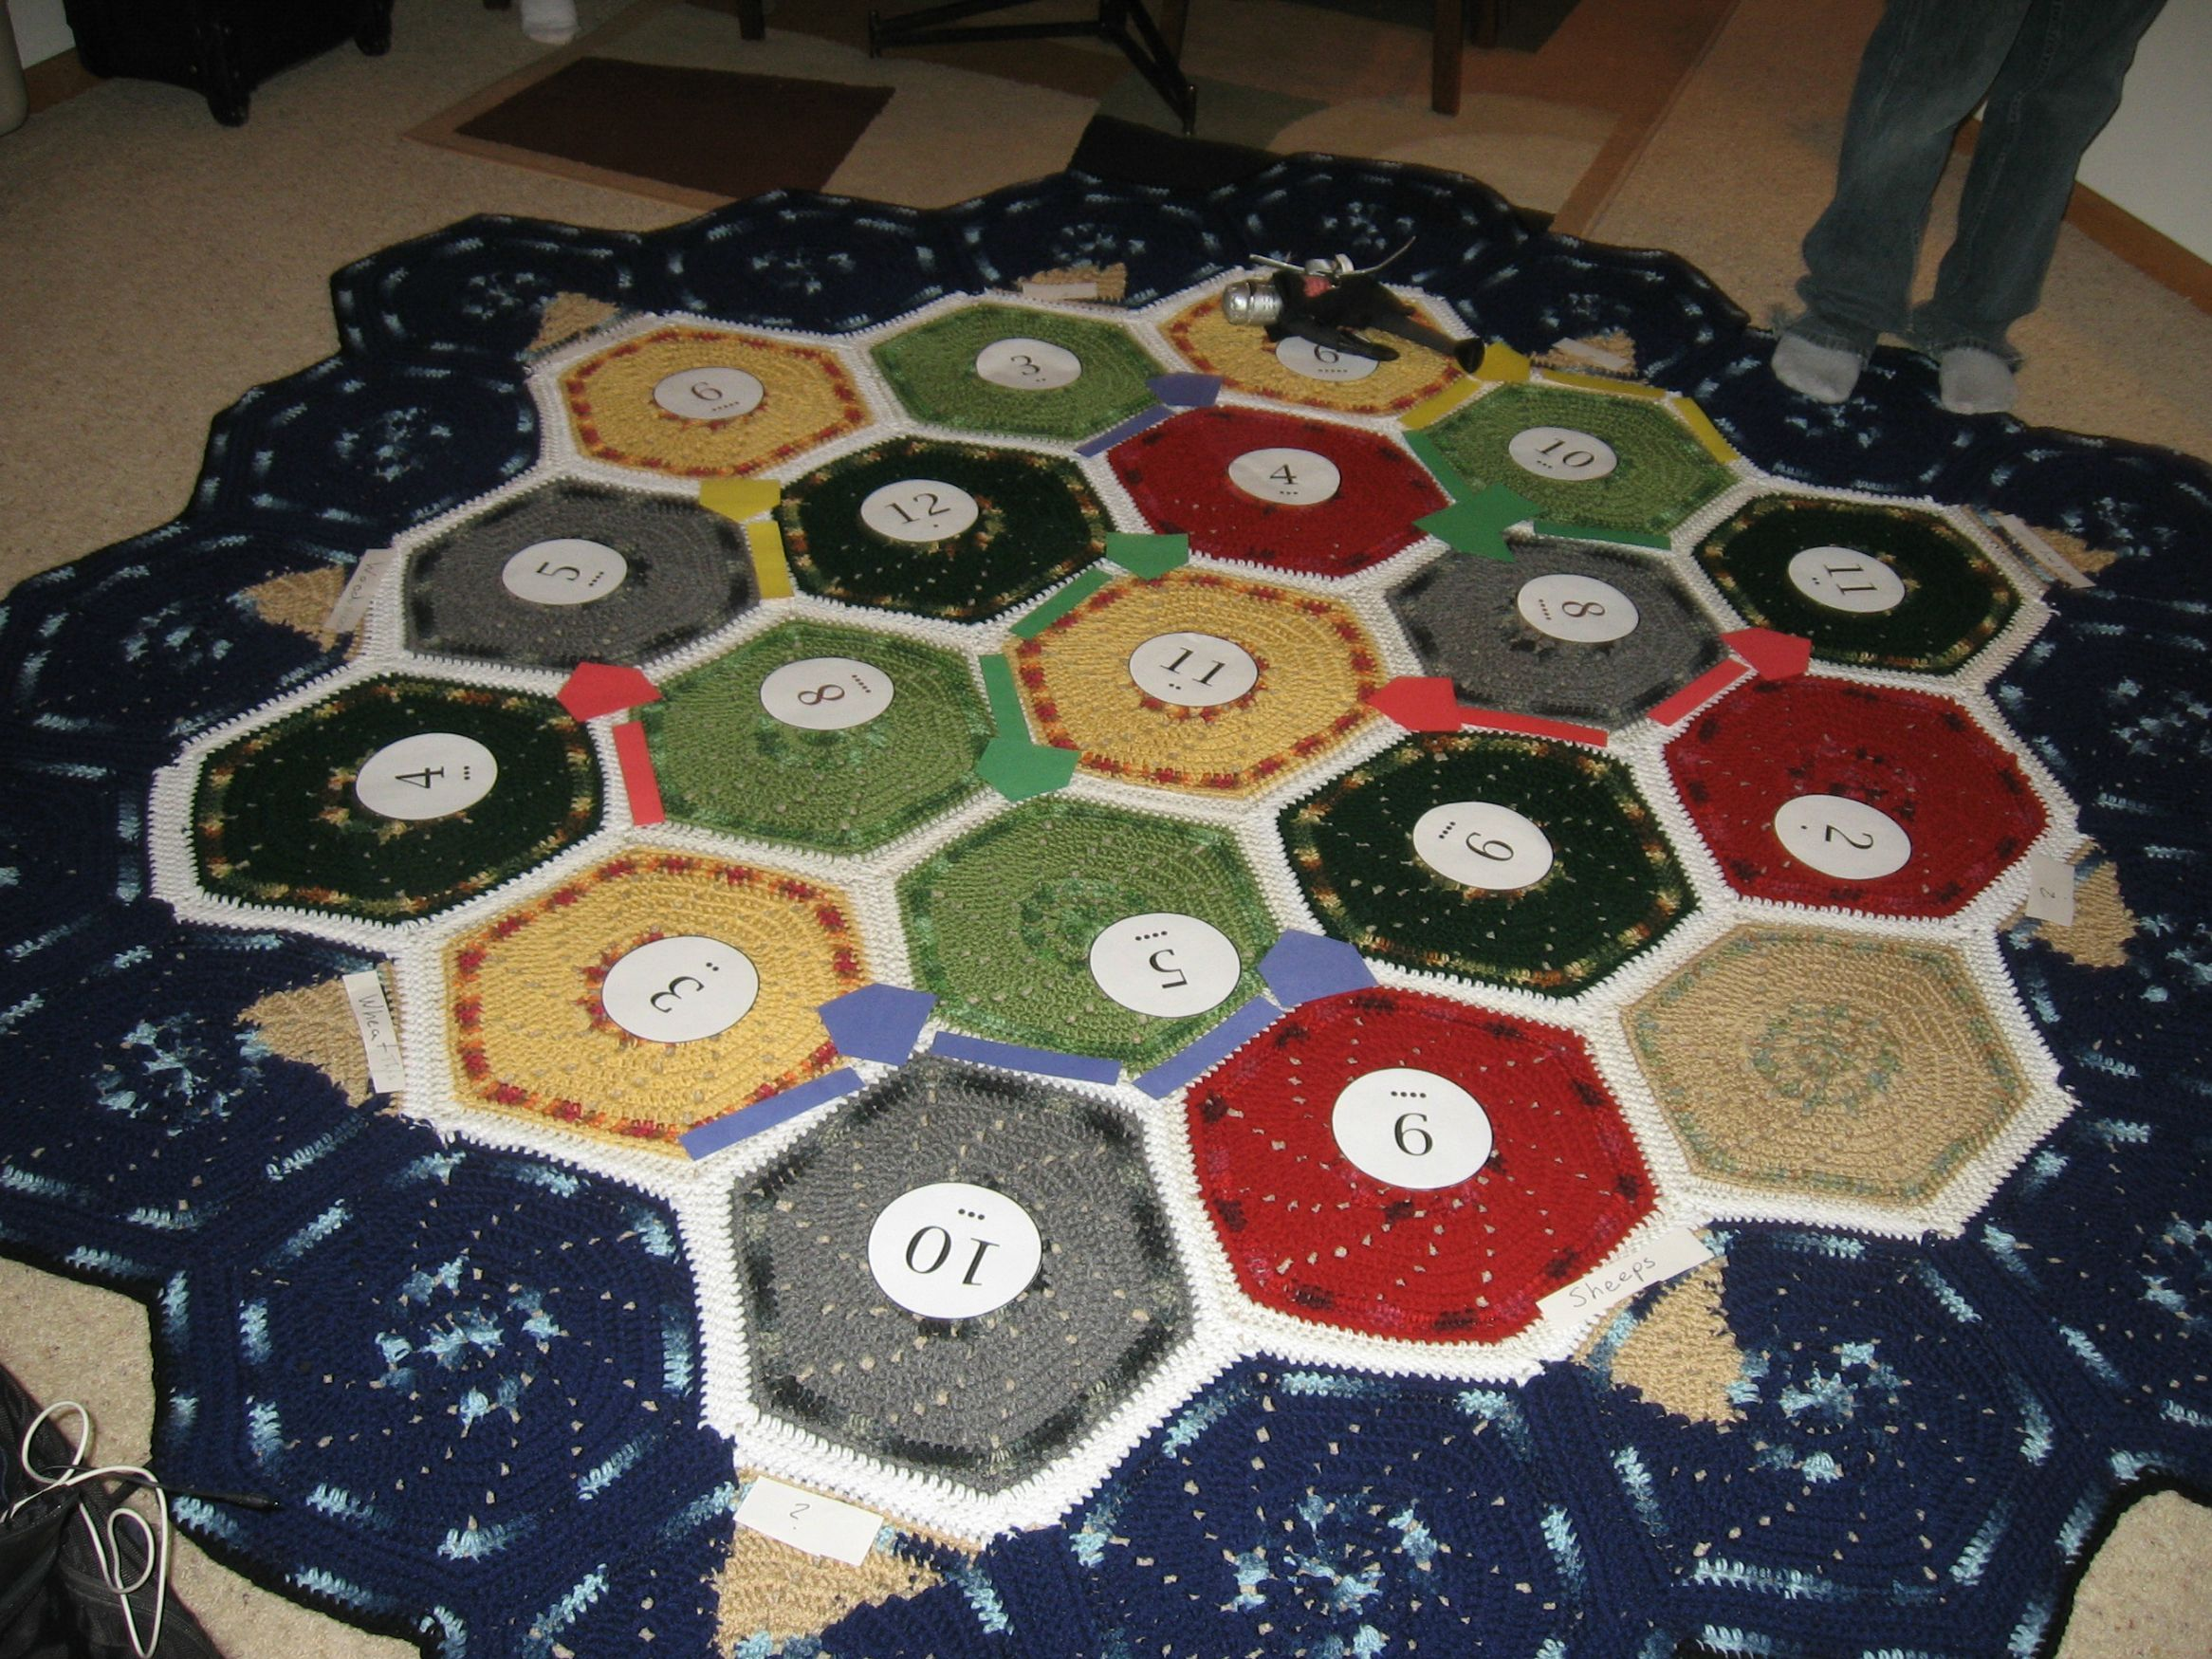 Giant Catan Throw Settlers of catan, Catan, Catan board